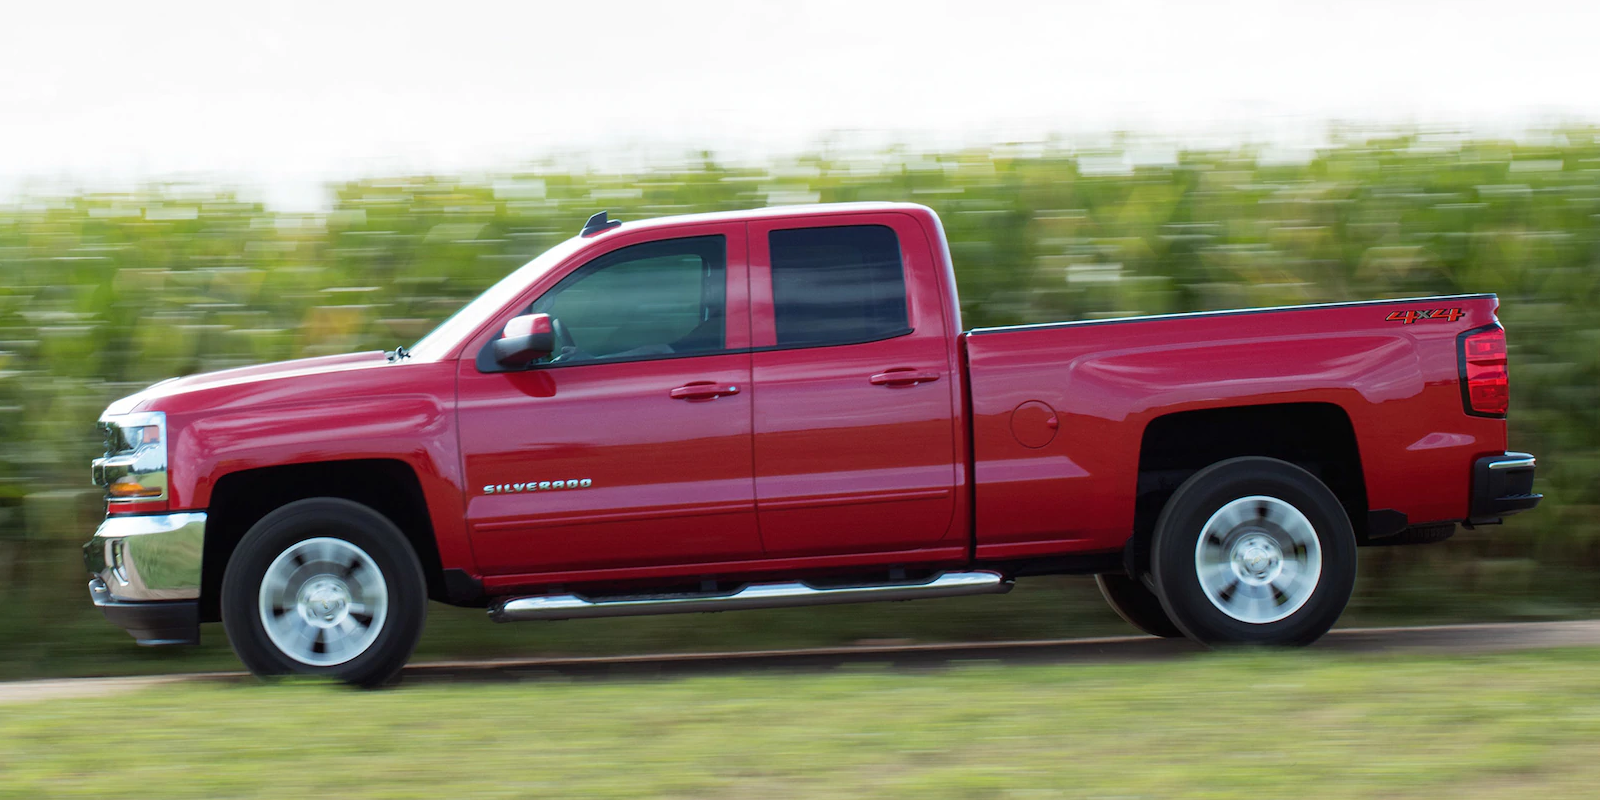 2019 Chevrolet Silverado 1500 Red Exterior Side Profile Picture.png